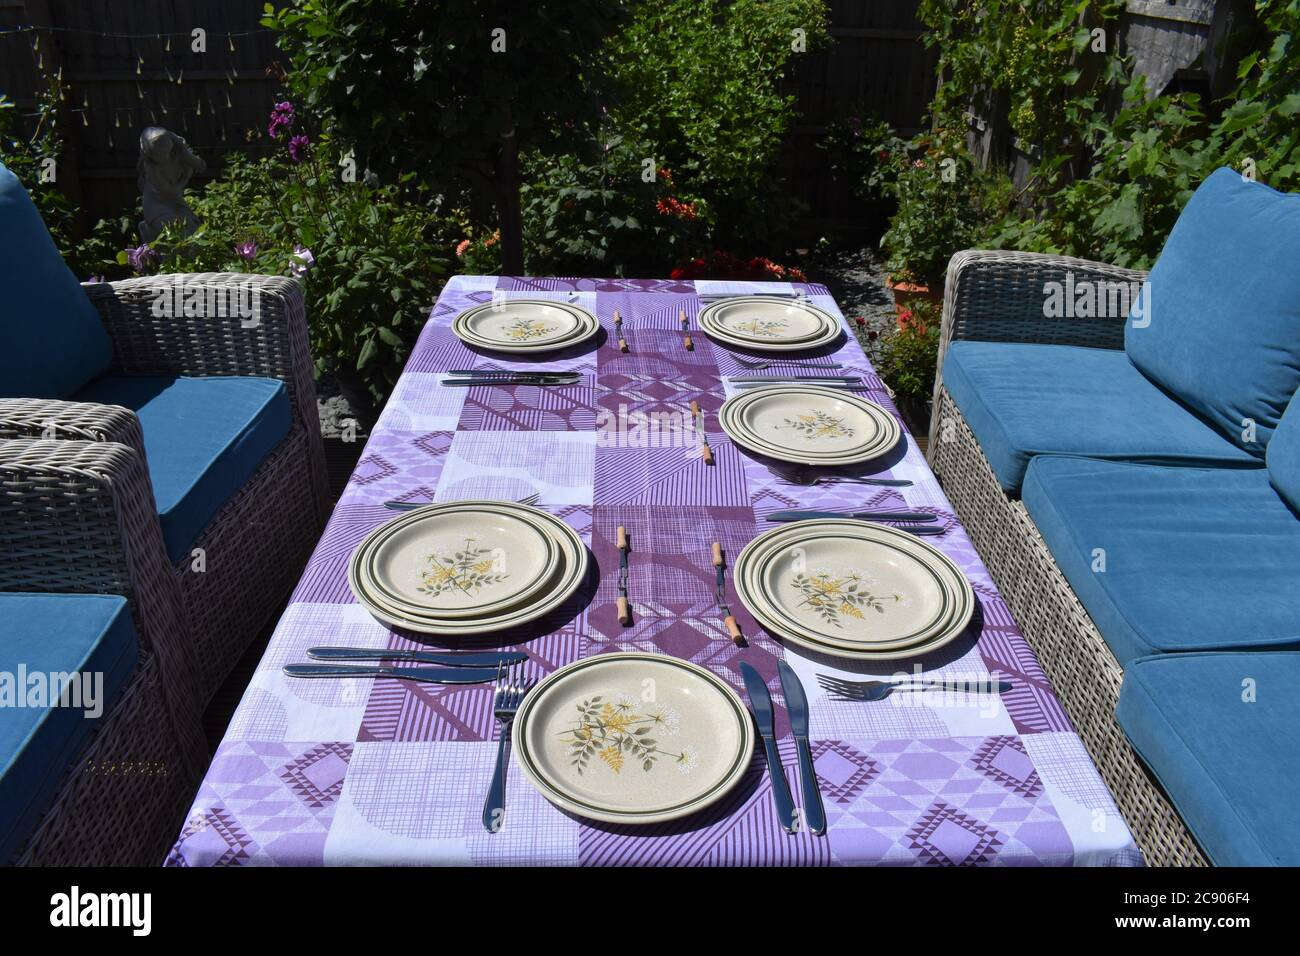 Rattan Garden Furniture High Resolution Stock Photography And Images Alamy